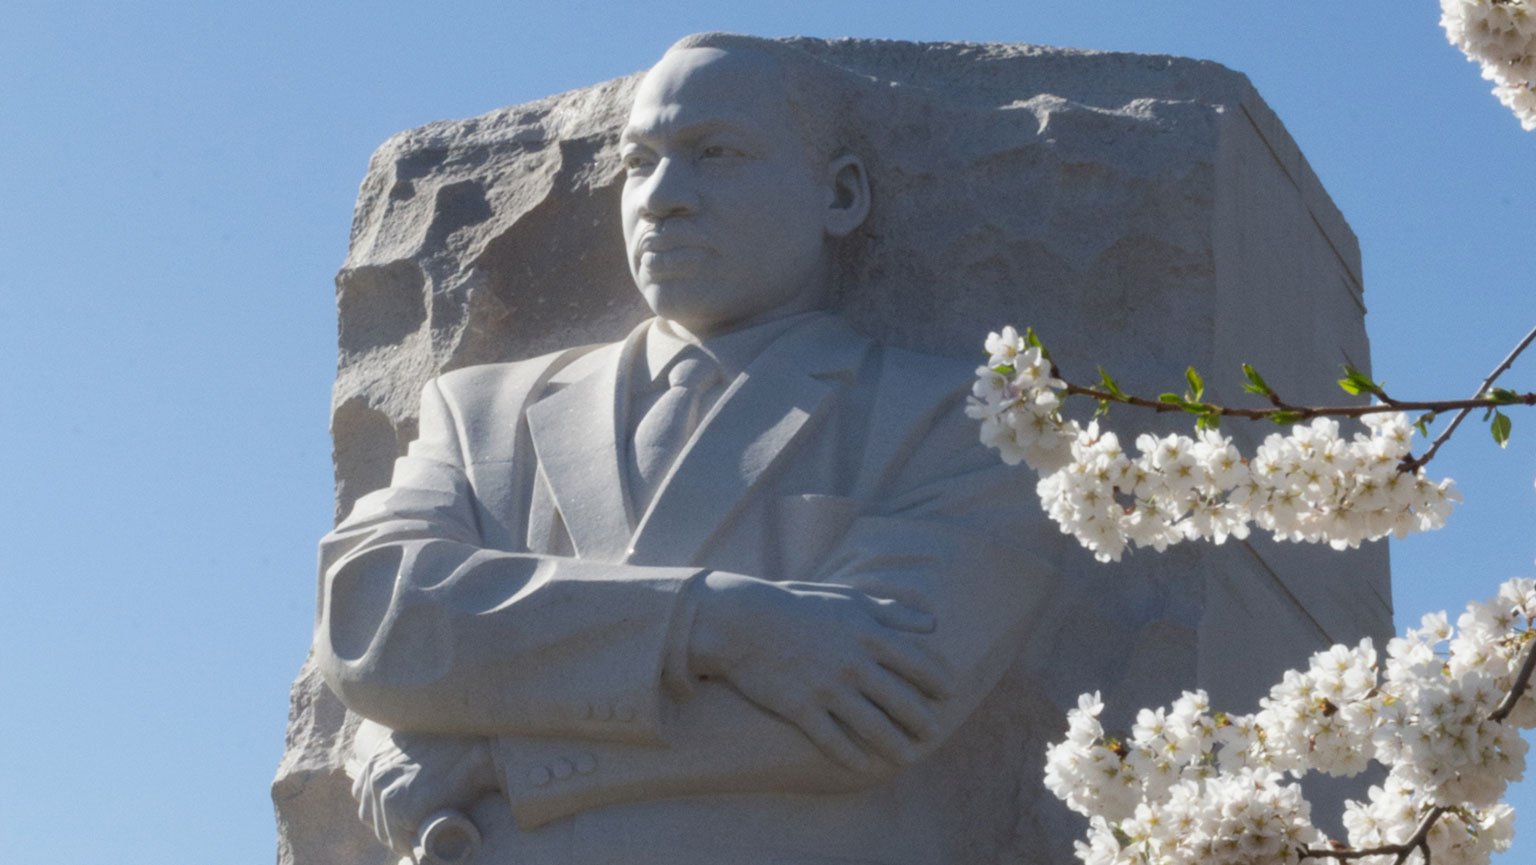 Share a Vision—Martin Luther King's Dream